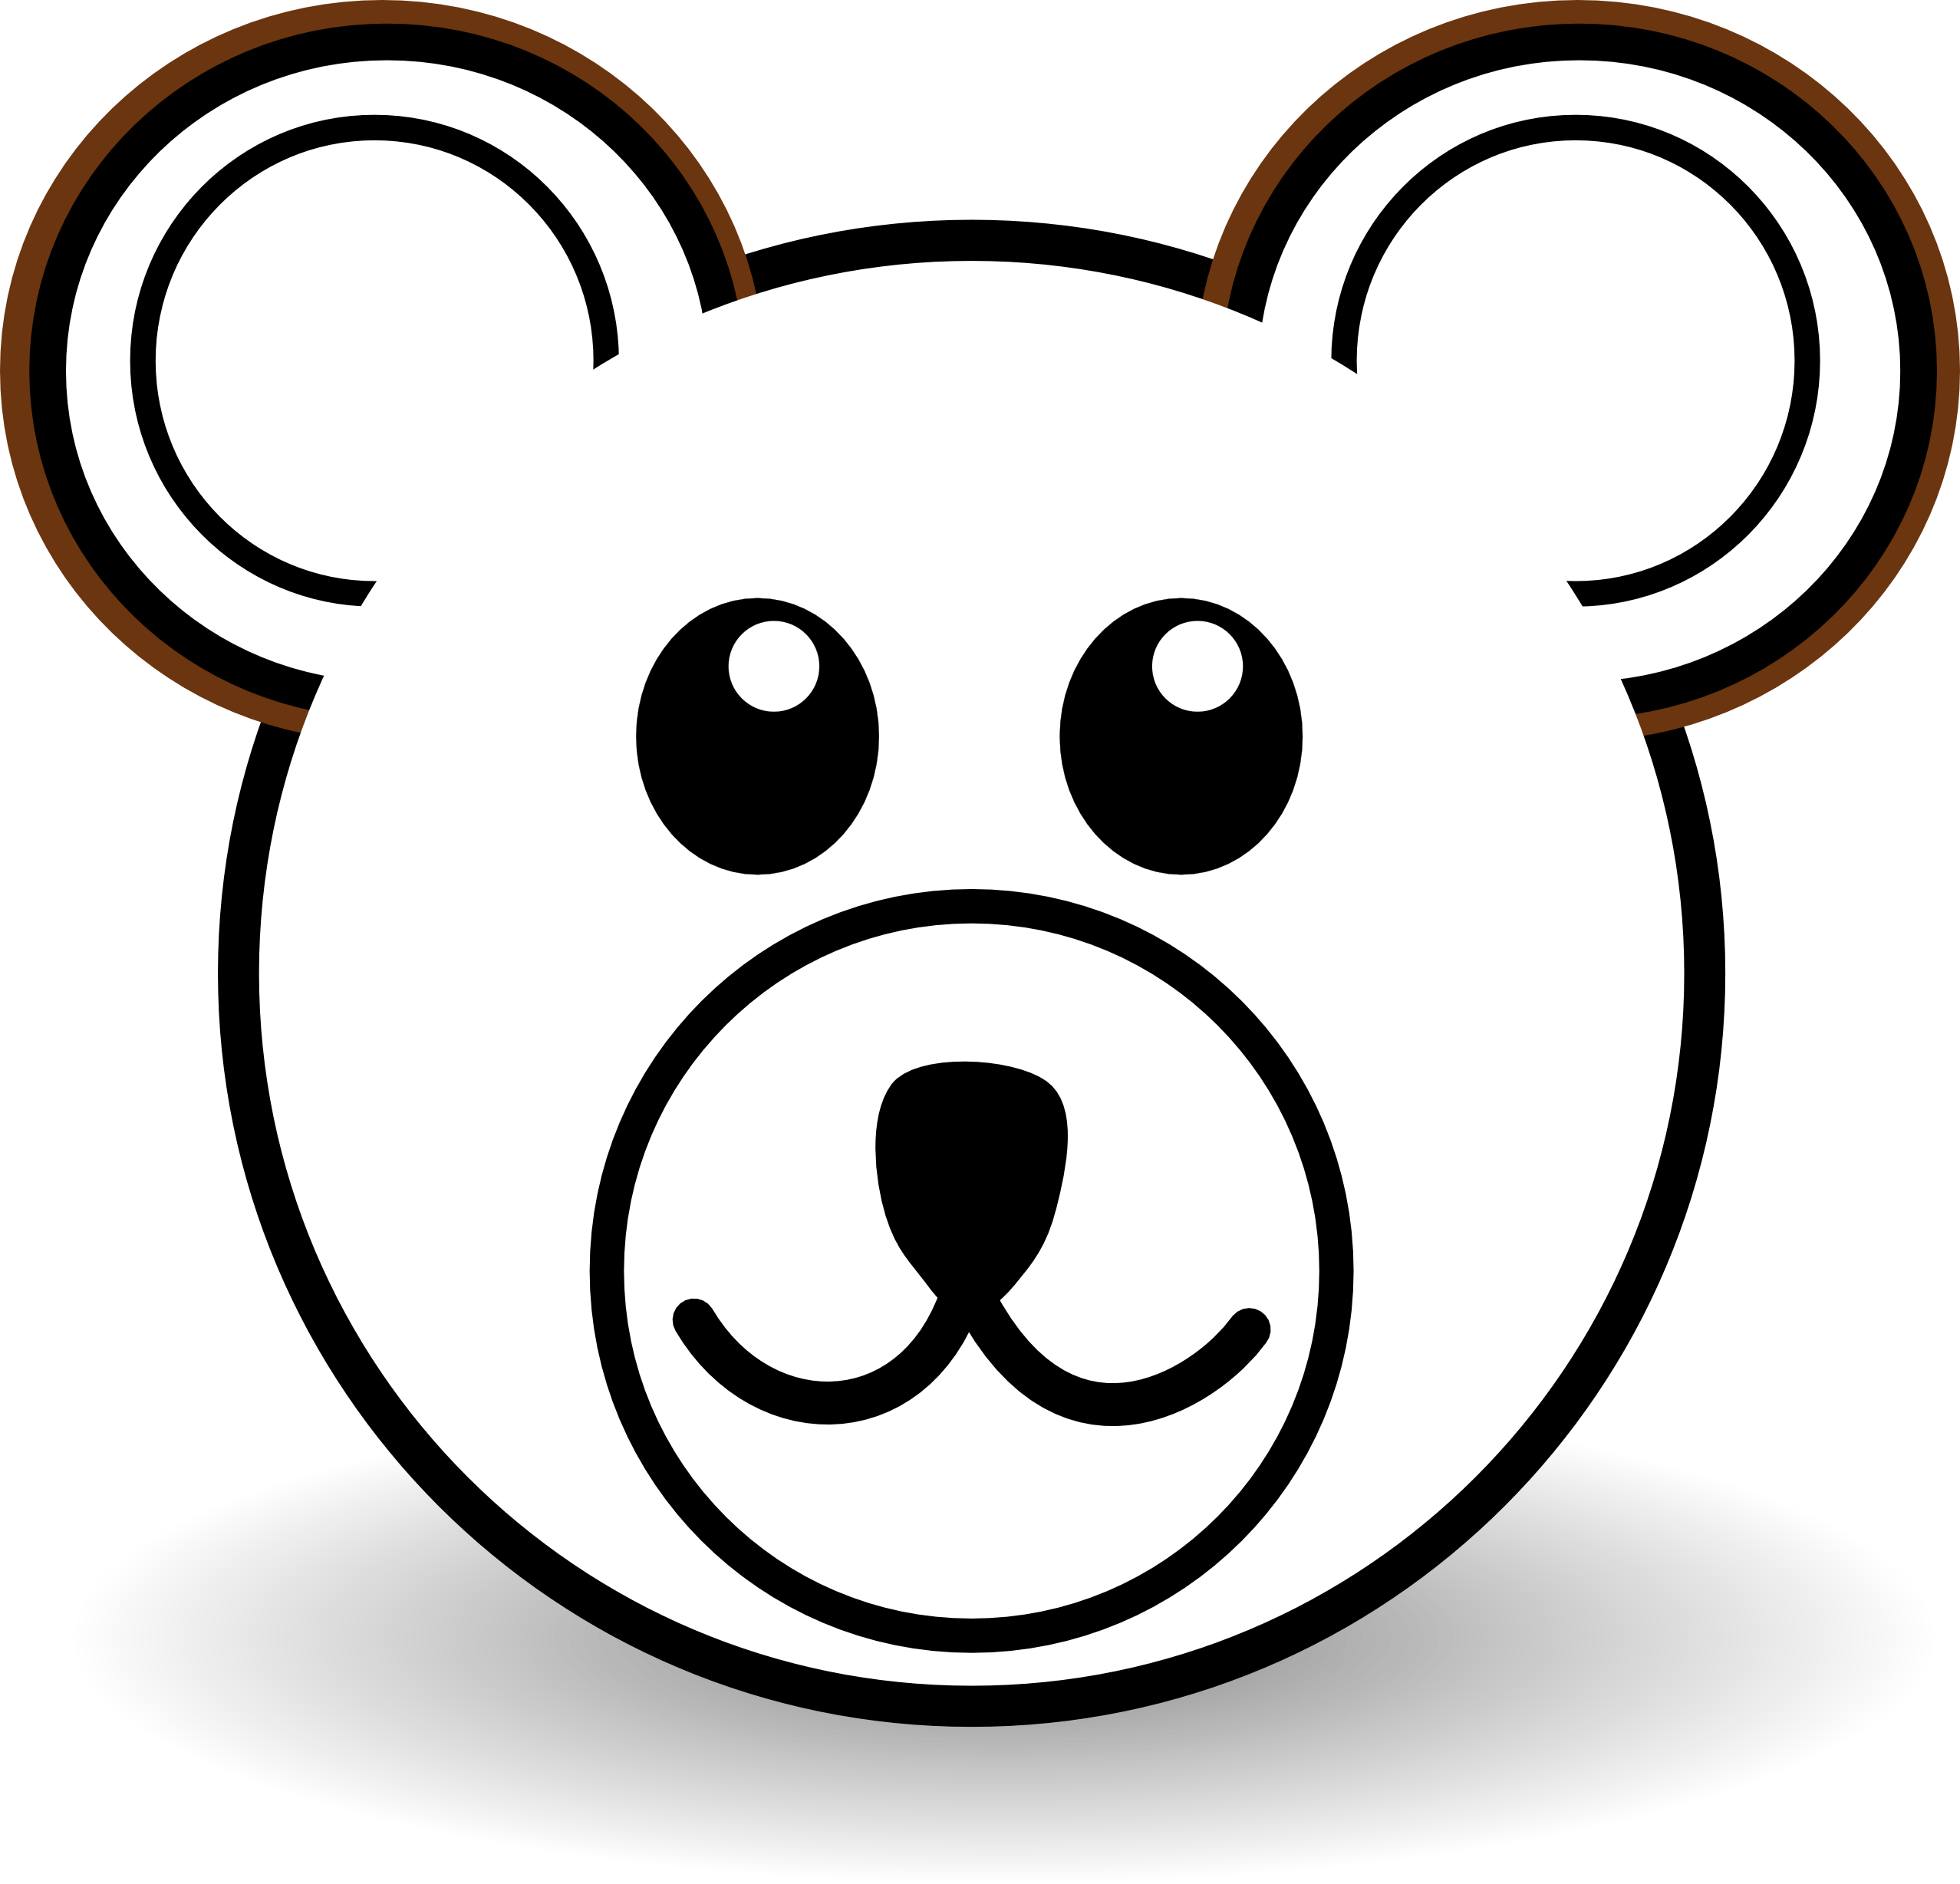 Number 1 clipart face. Bear png hd transparent